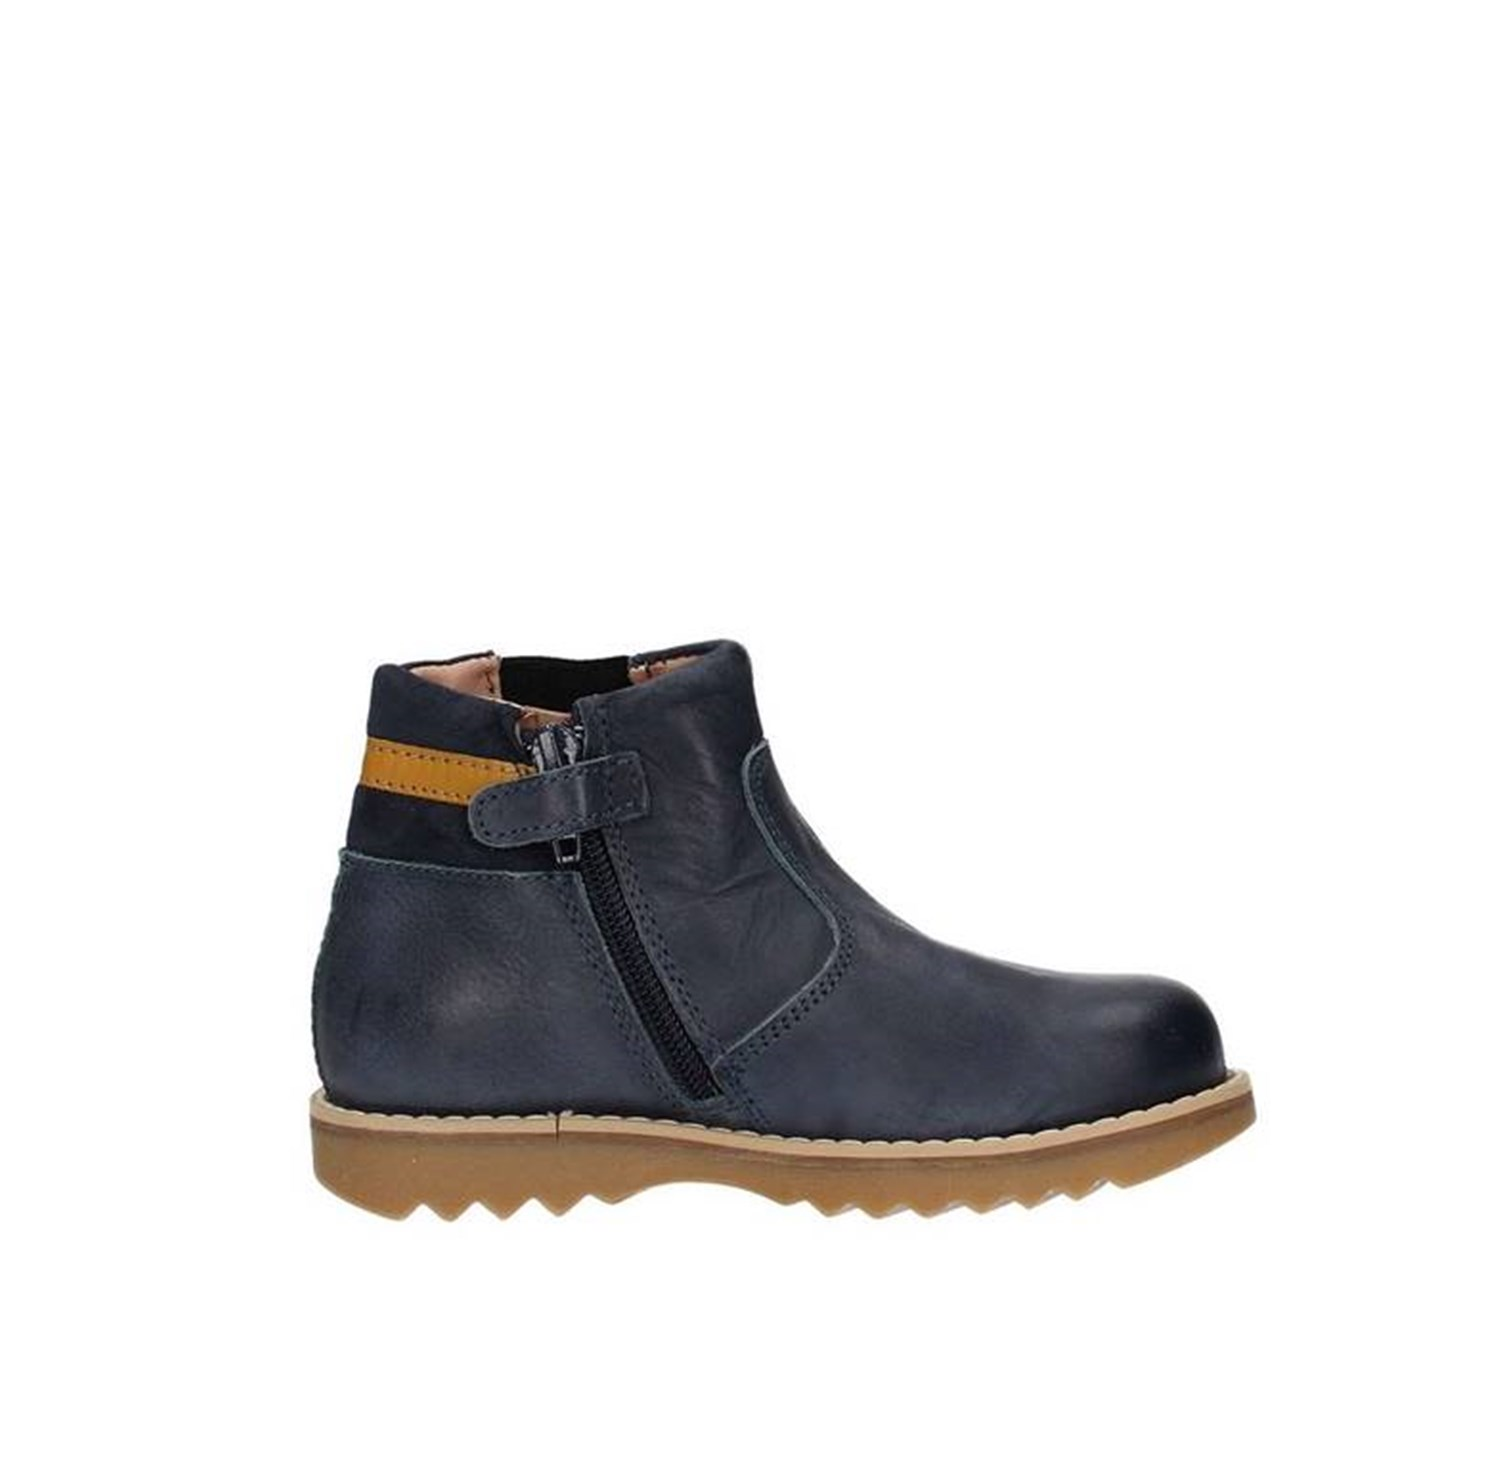 Balducci Shoes Child boots BLUE CITA054